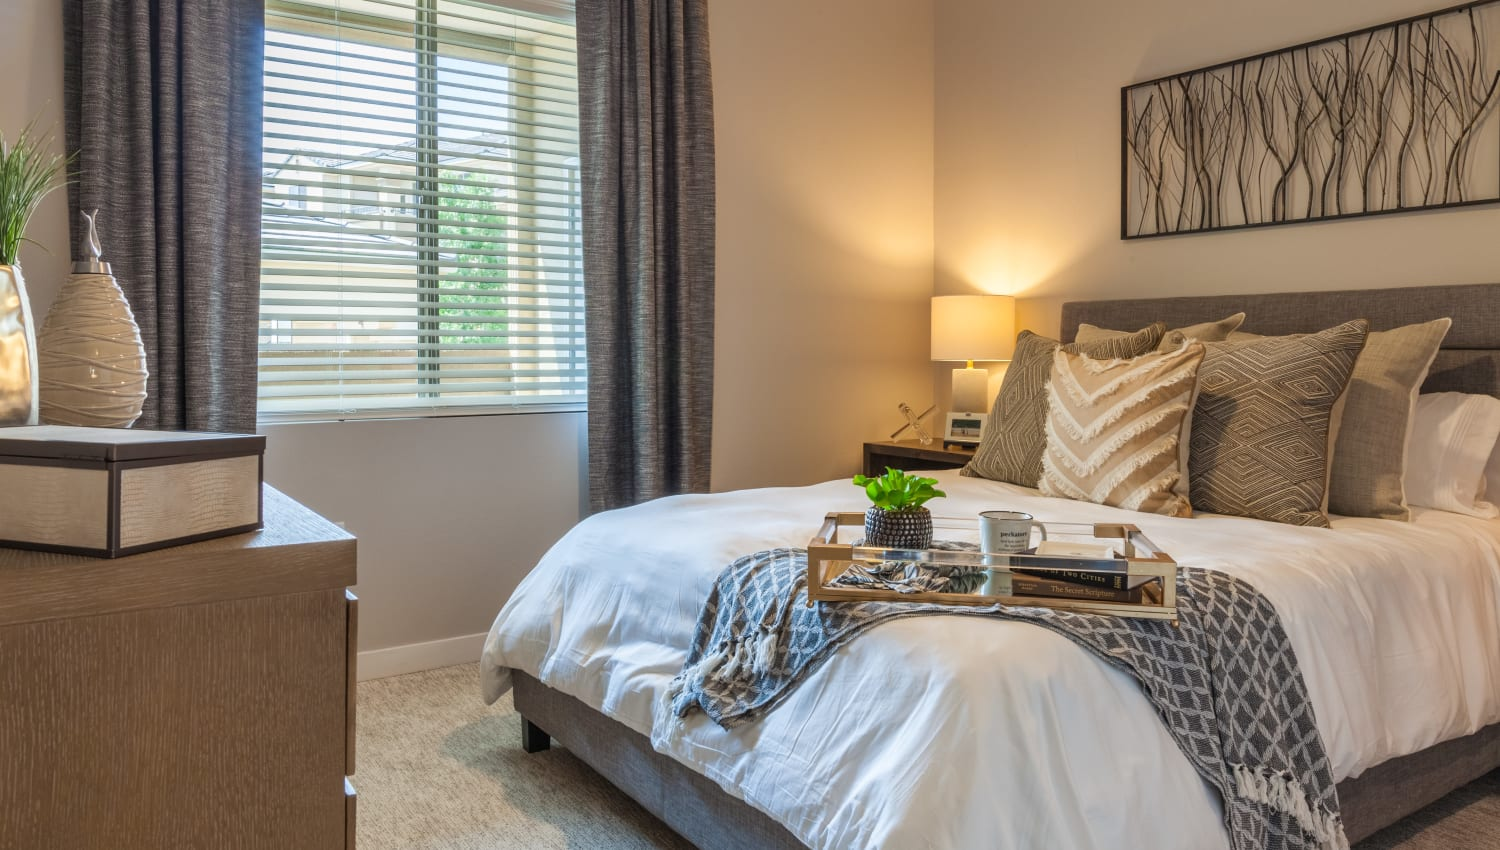 Large and comfortable bedroom at Olympus Alameda in Albuquerque, New Mexico